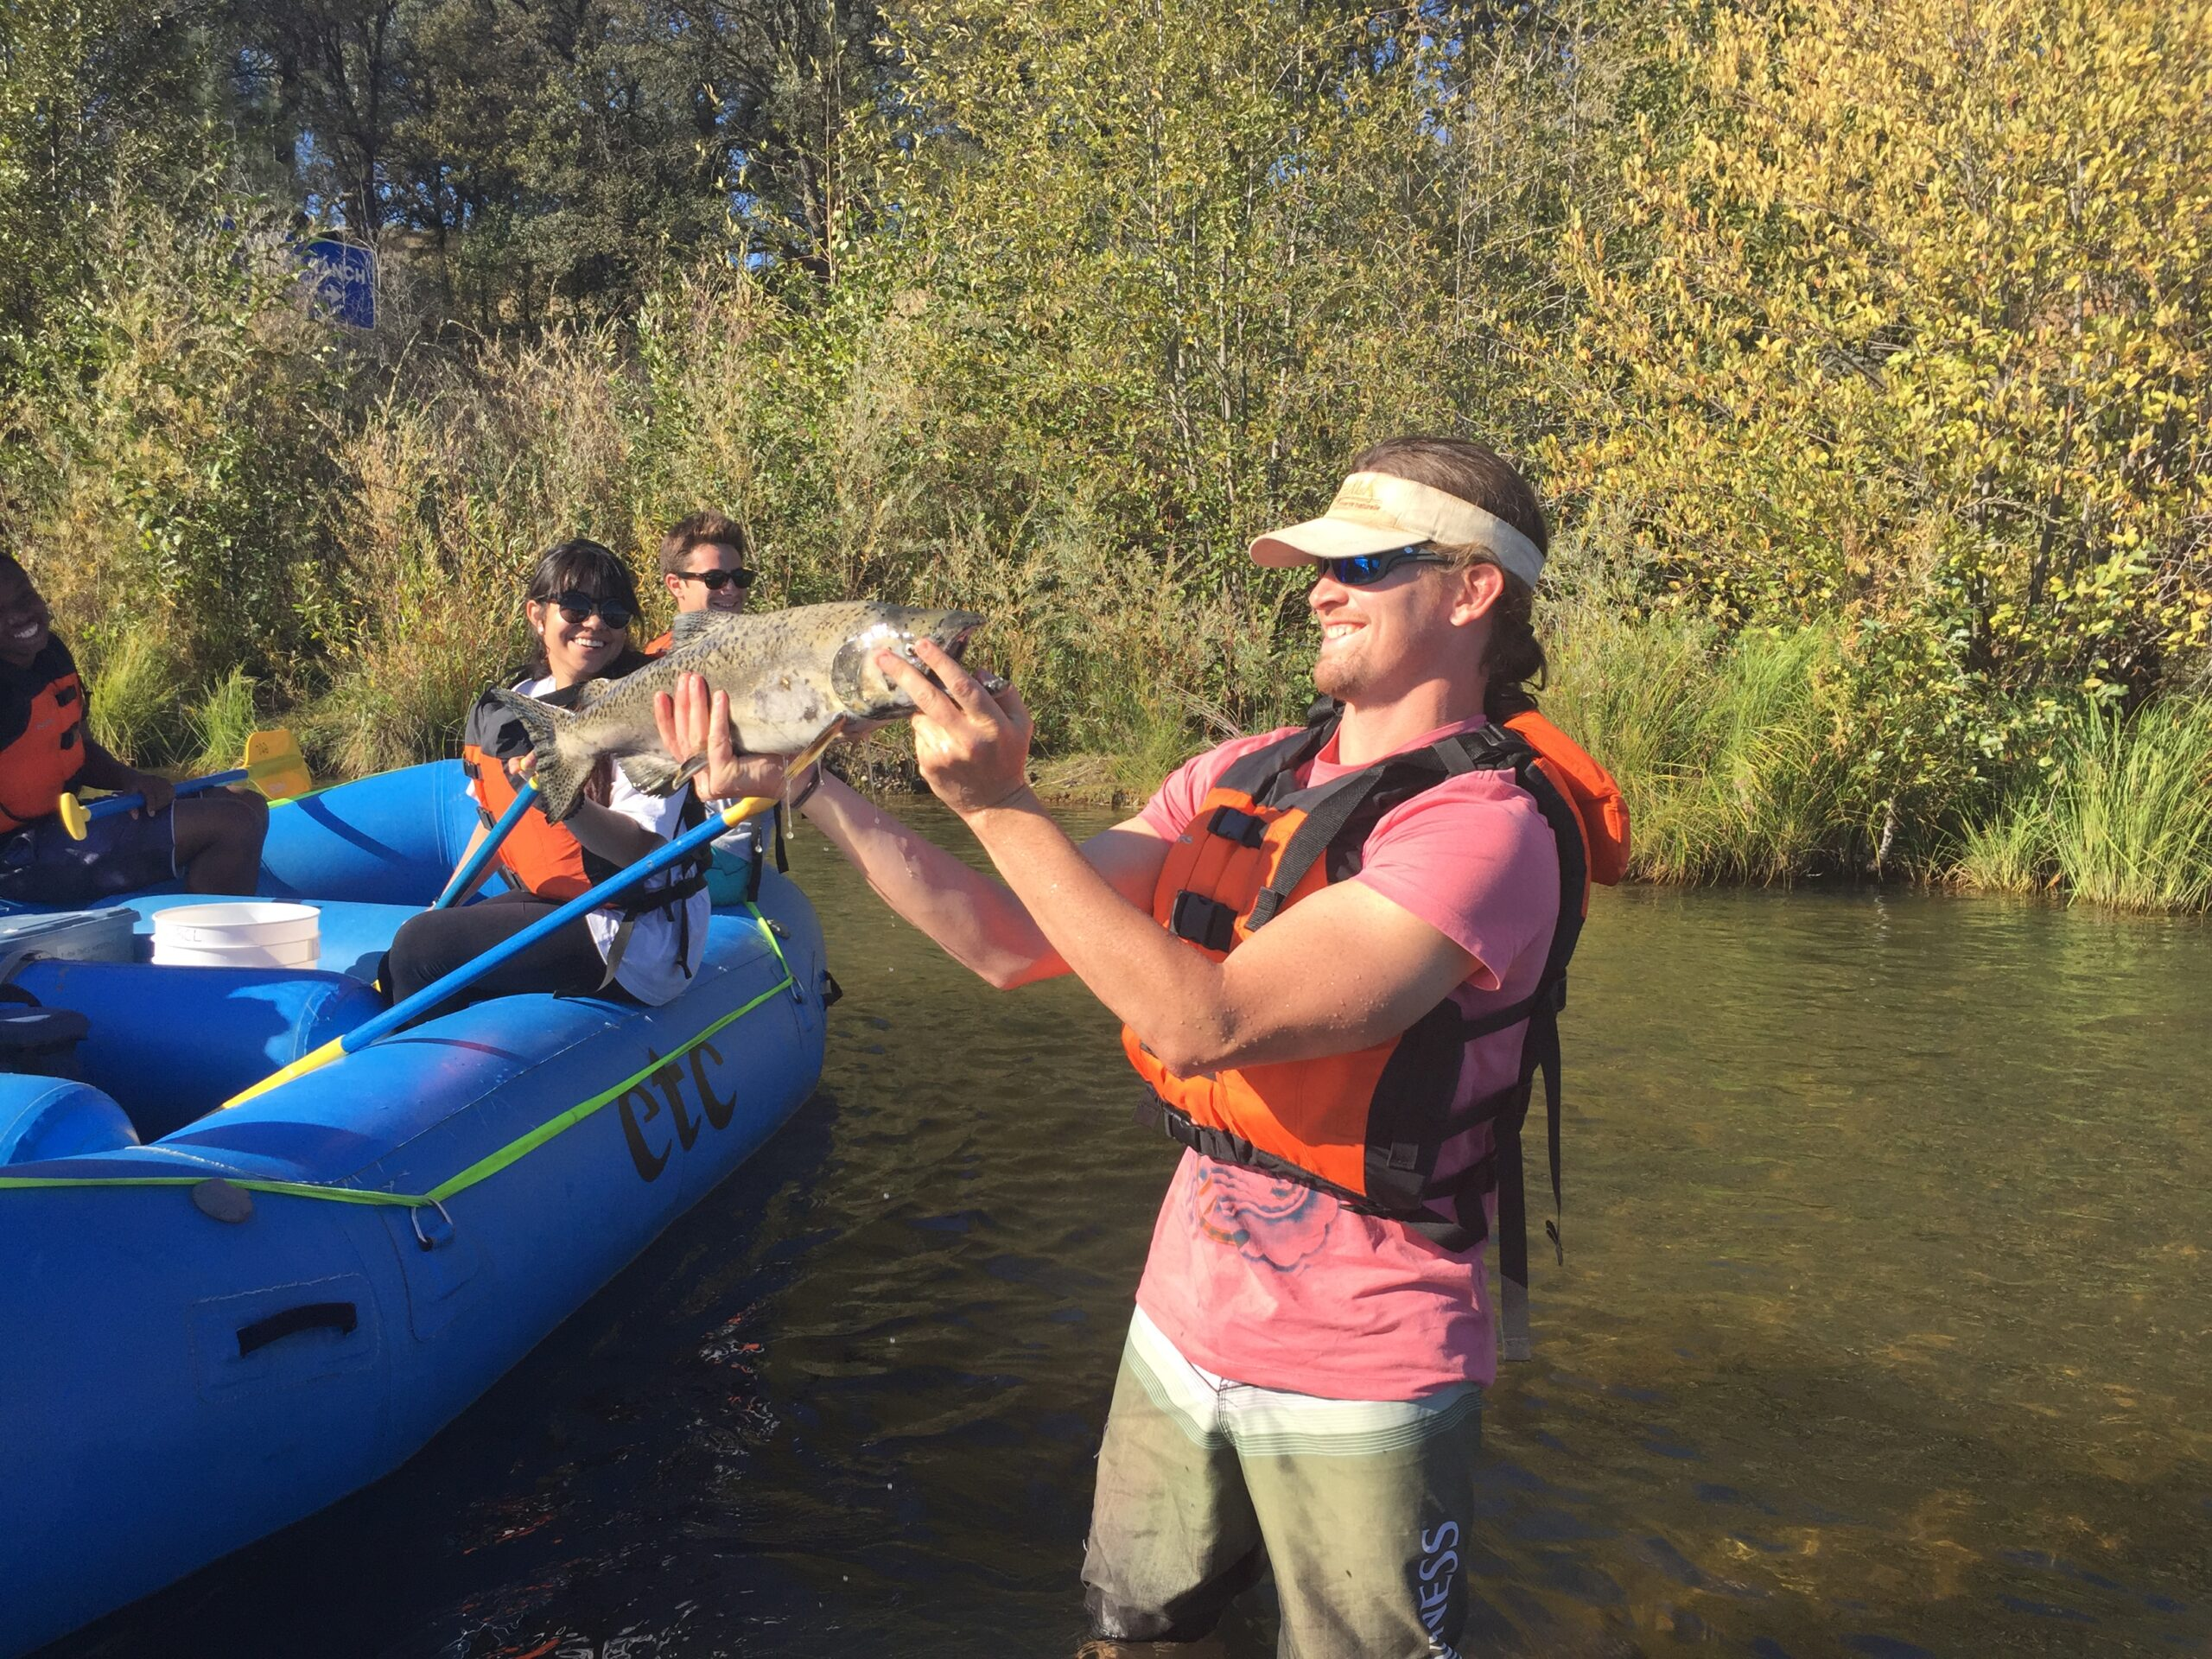 Man holding fish at river raft trip on the Yuba River